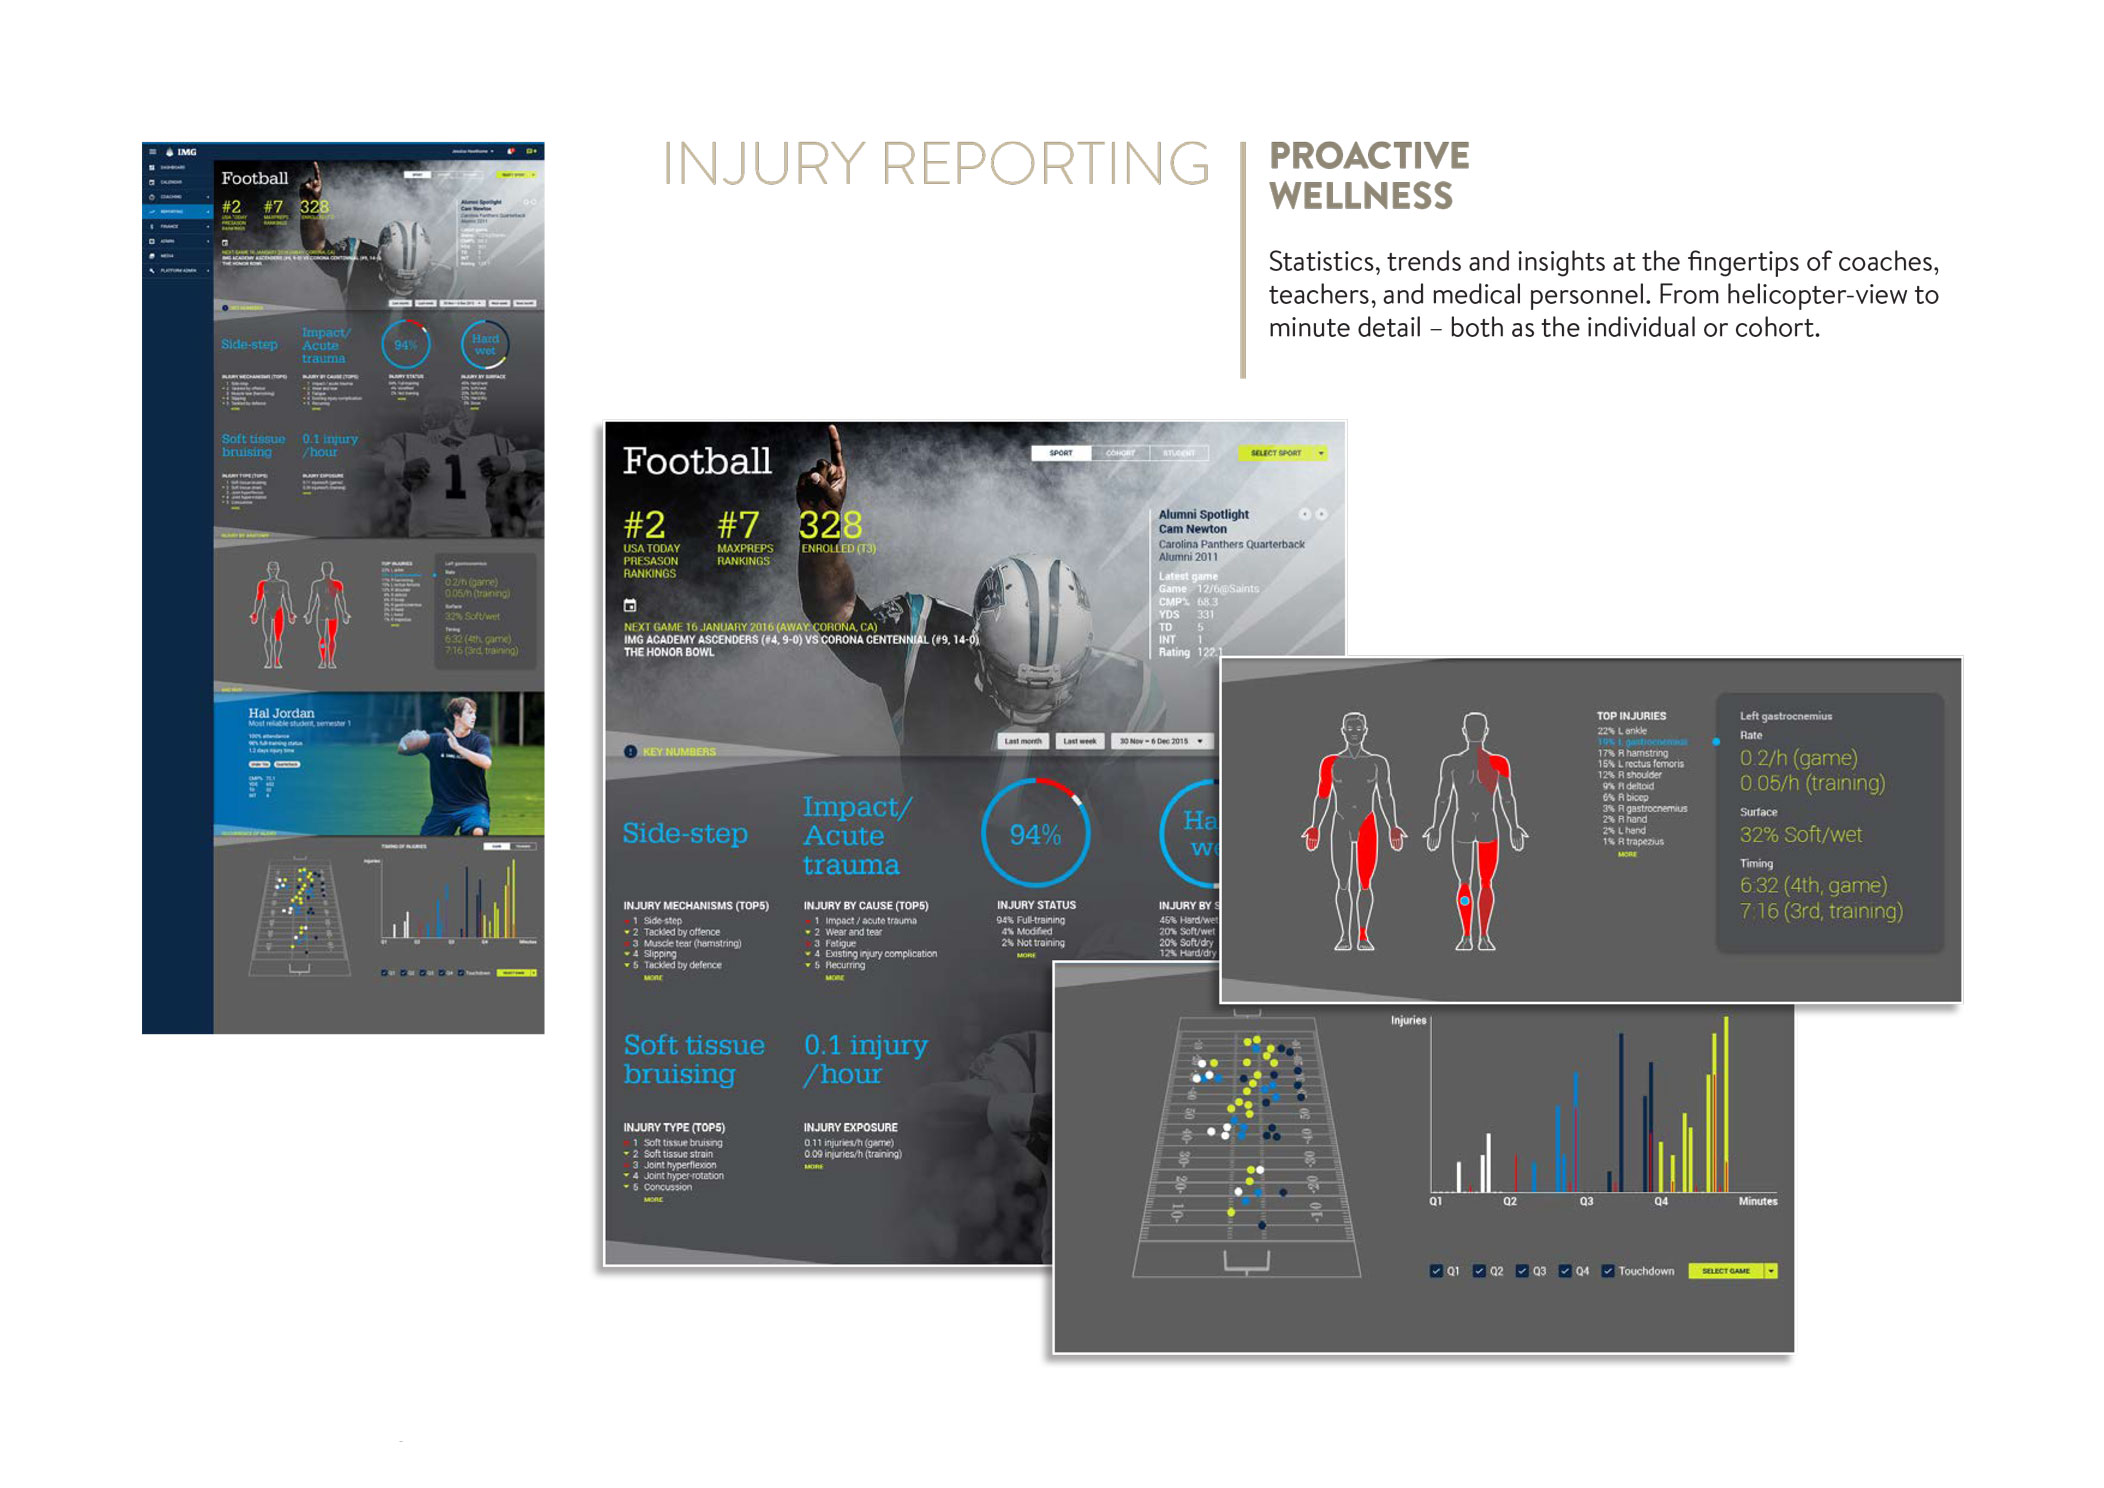 SMG-Technologies-slides-injury-reporting.jpg